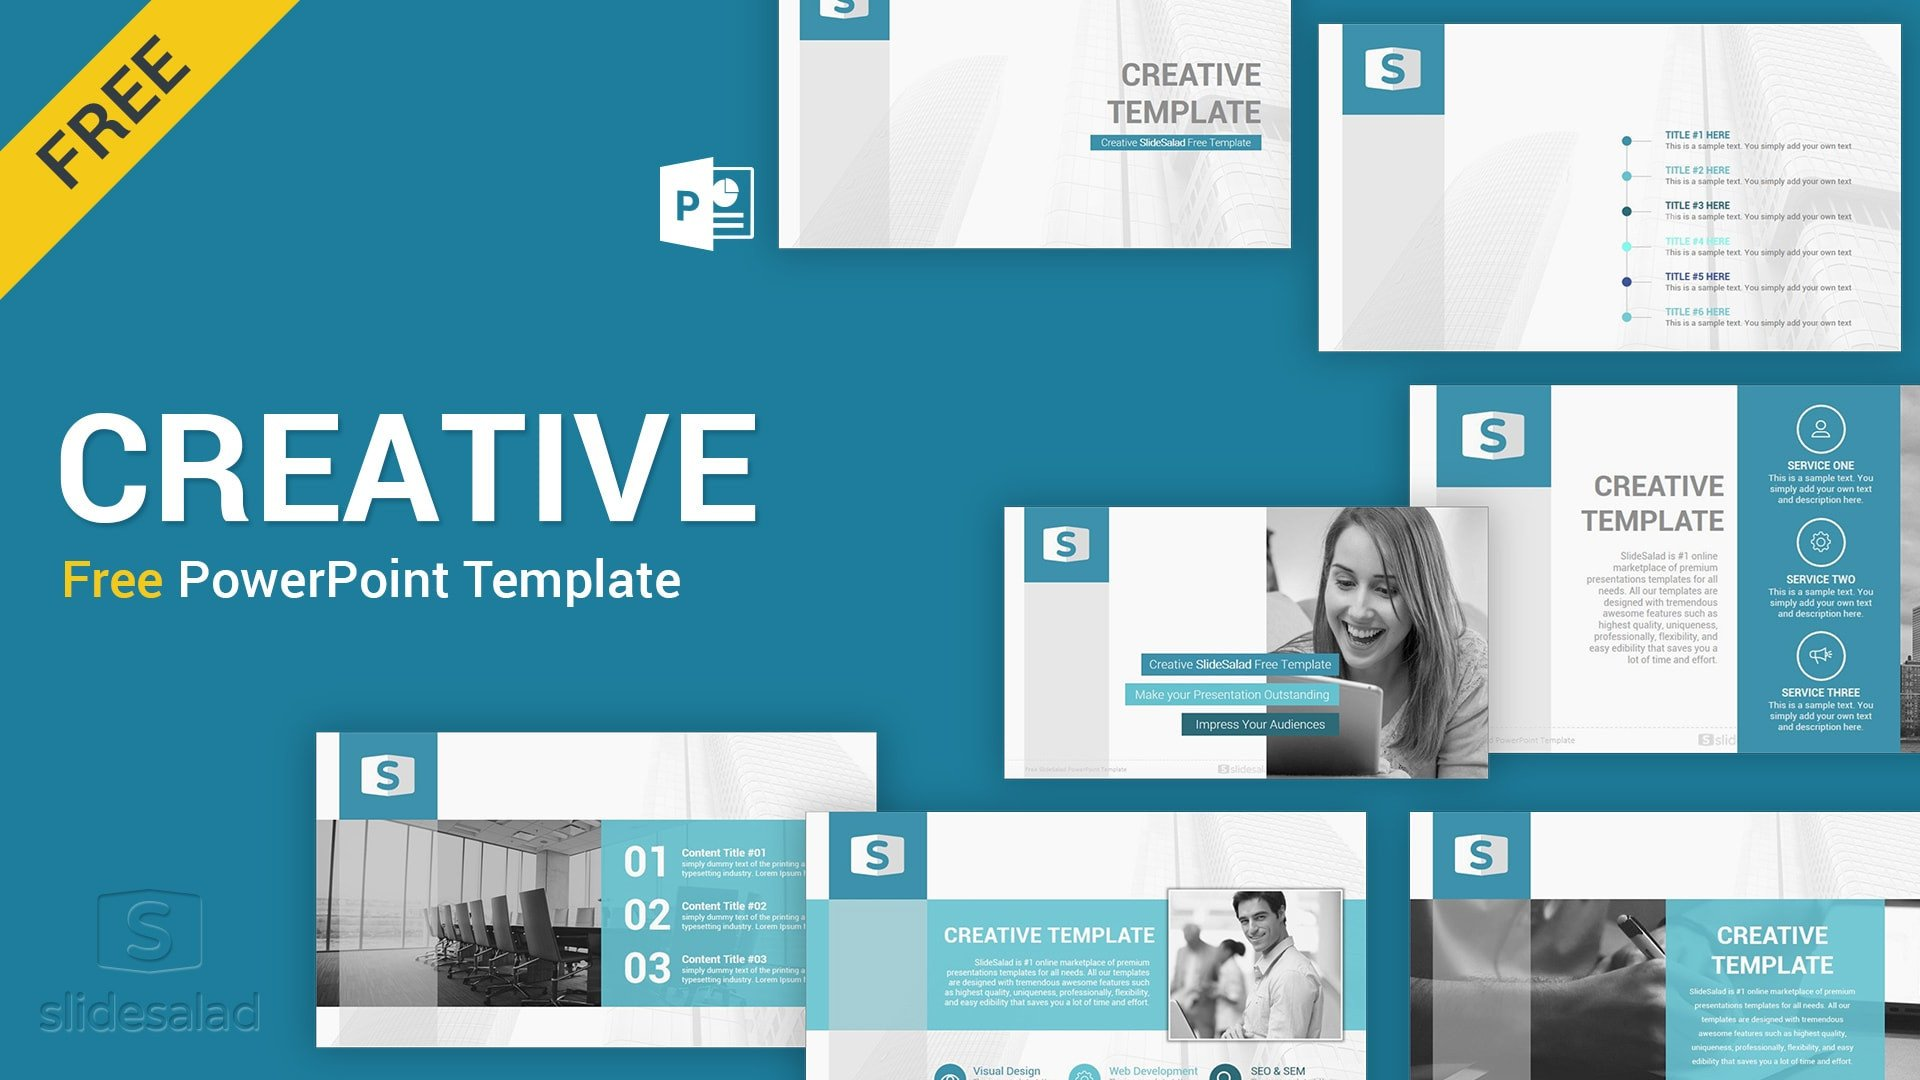 Creative Powerpoint Templates Free Download Creative Free Download Powerpoint Template Slidesalad